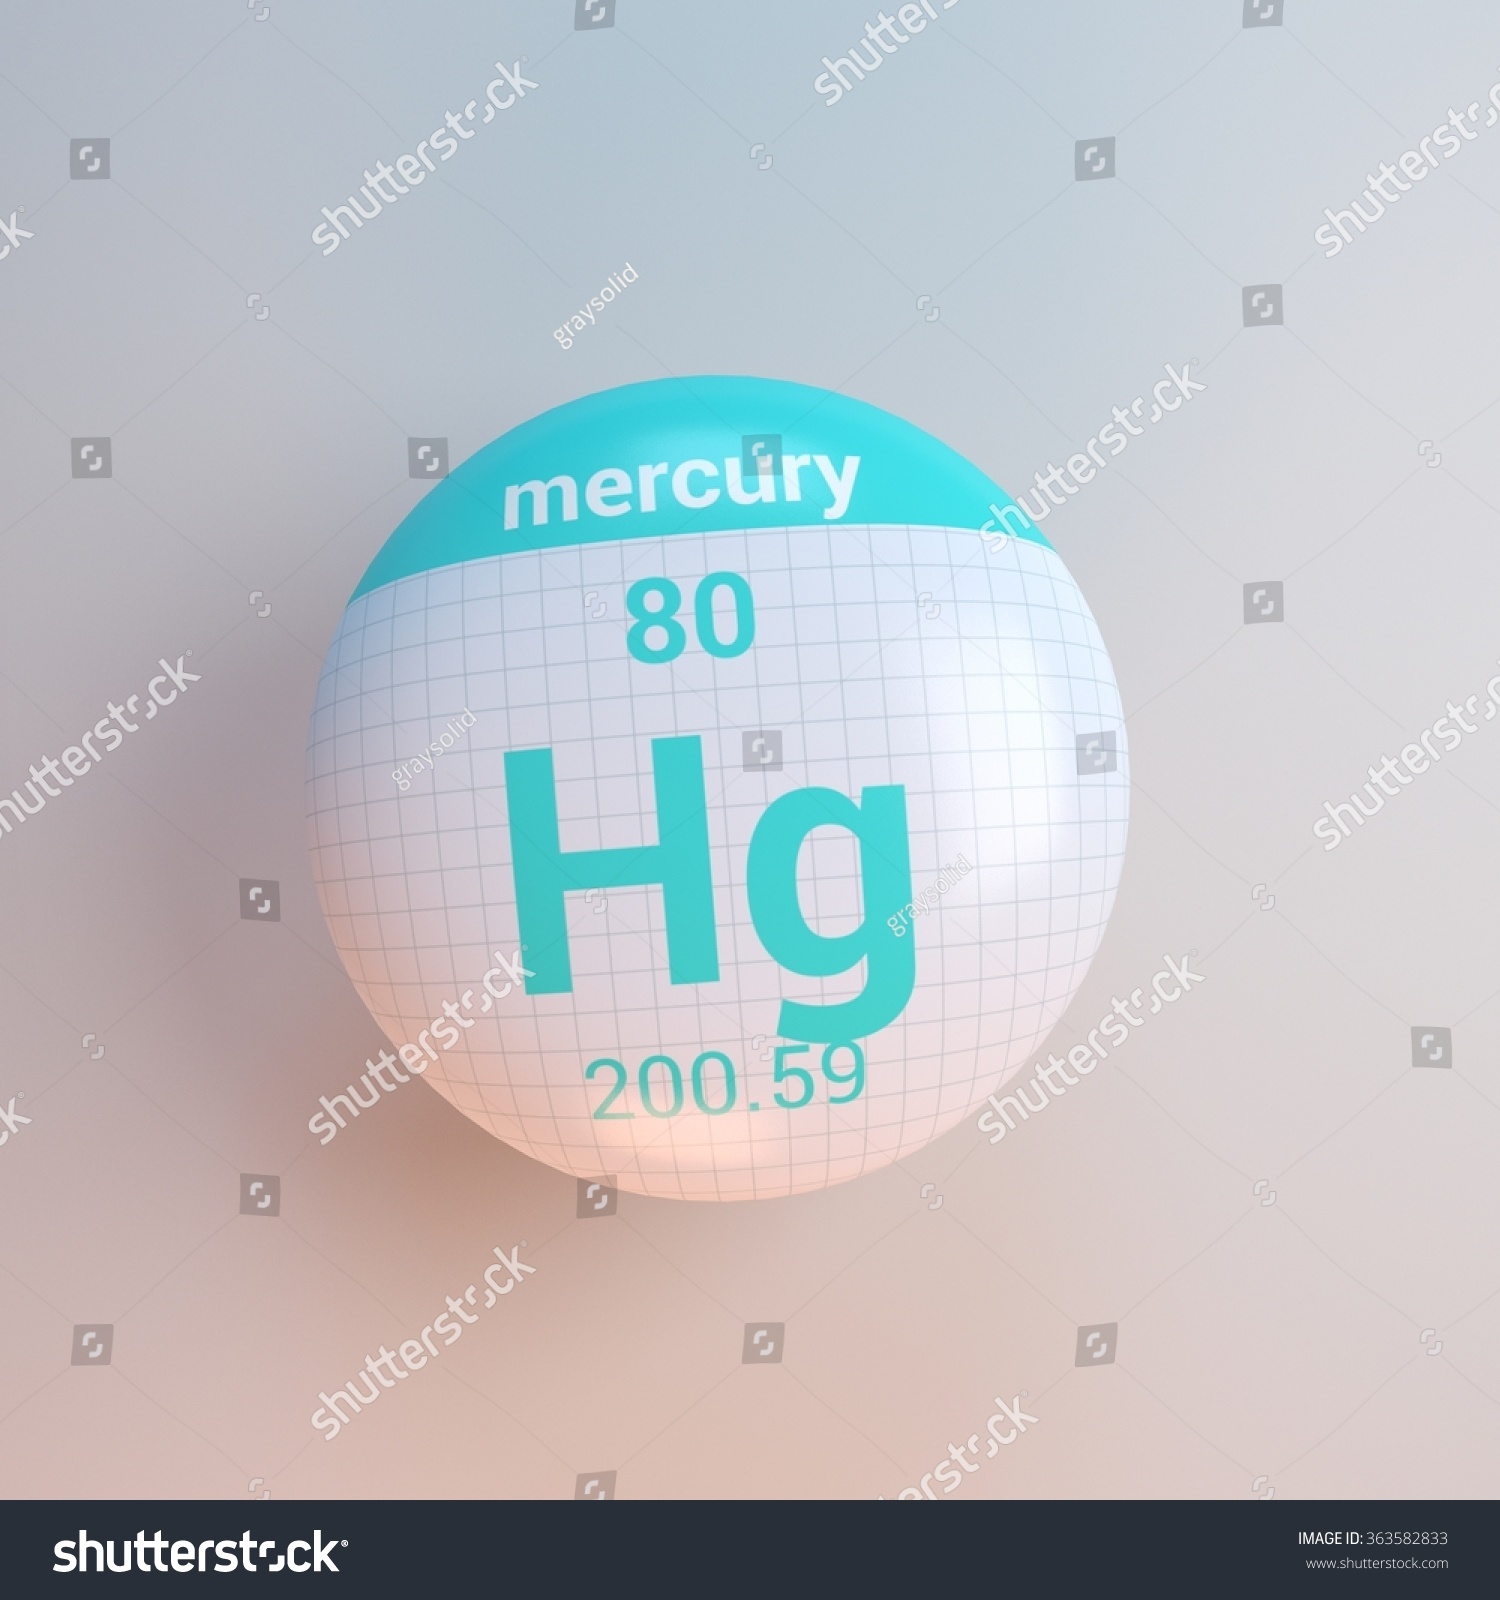 Periodic table elements mercury stock illustration 363582833 periodic table of elements mercury urtaz Image collections